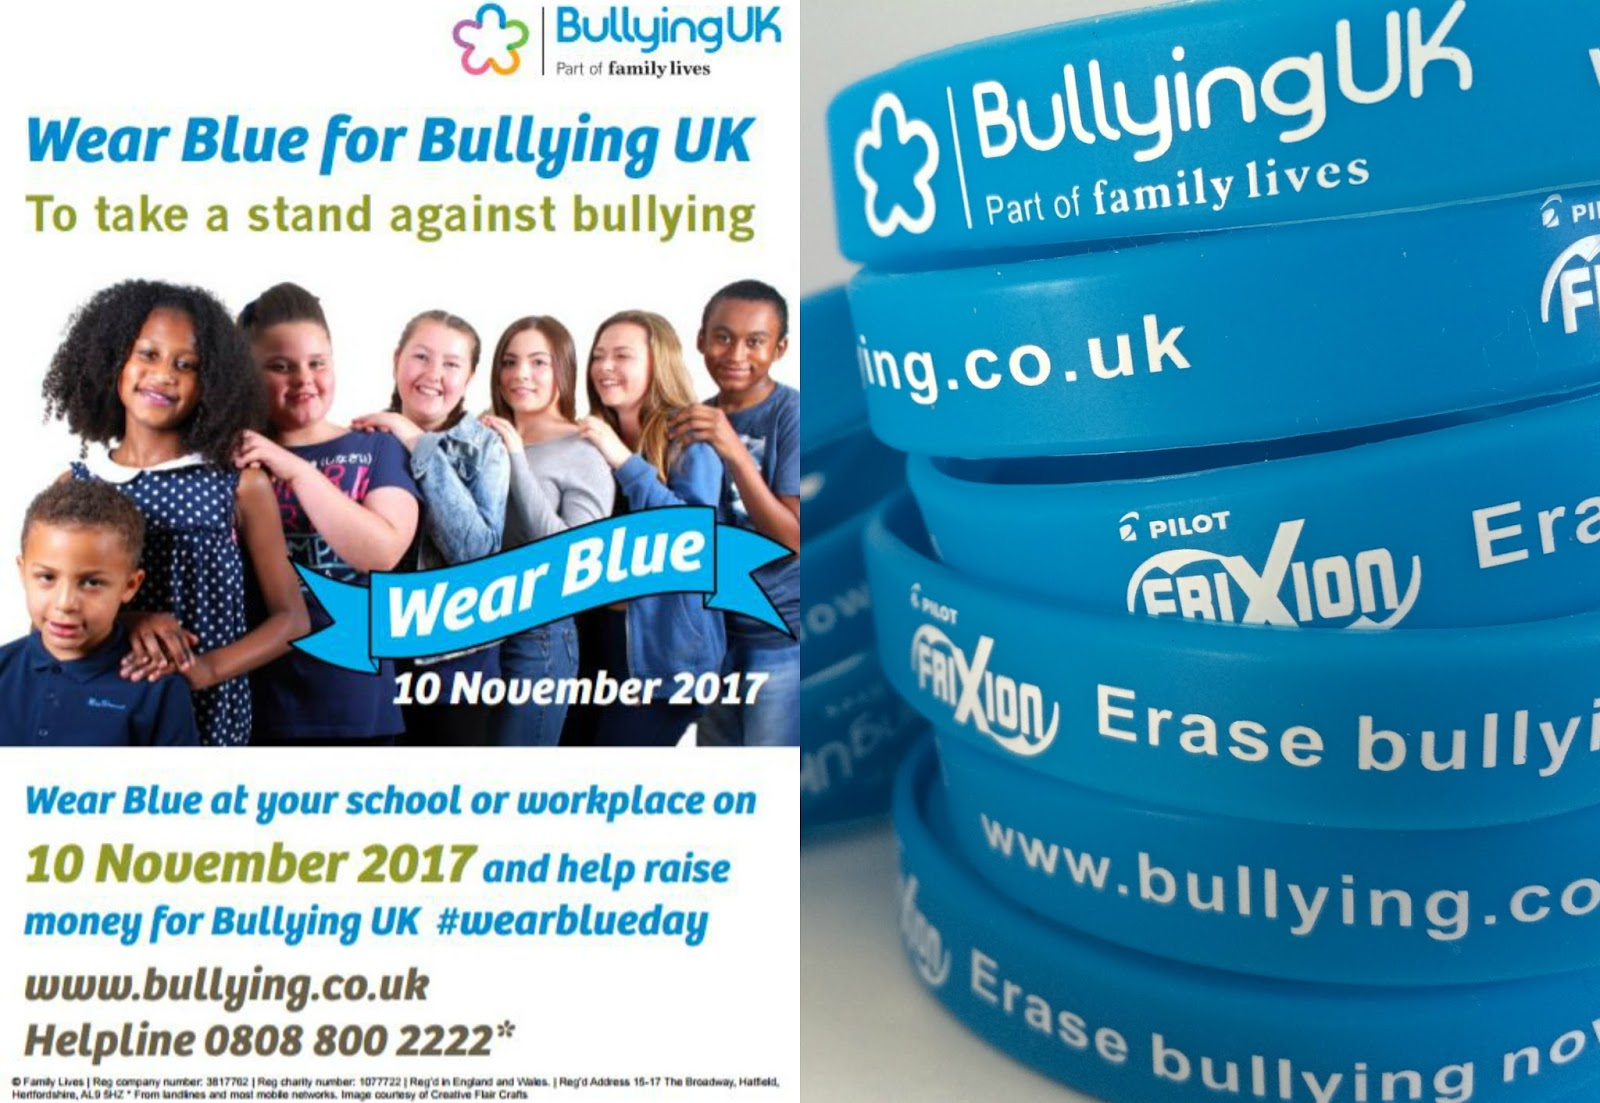 Wear Blue campaign for Bullying UK, bullying within Blogging